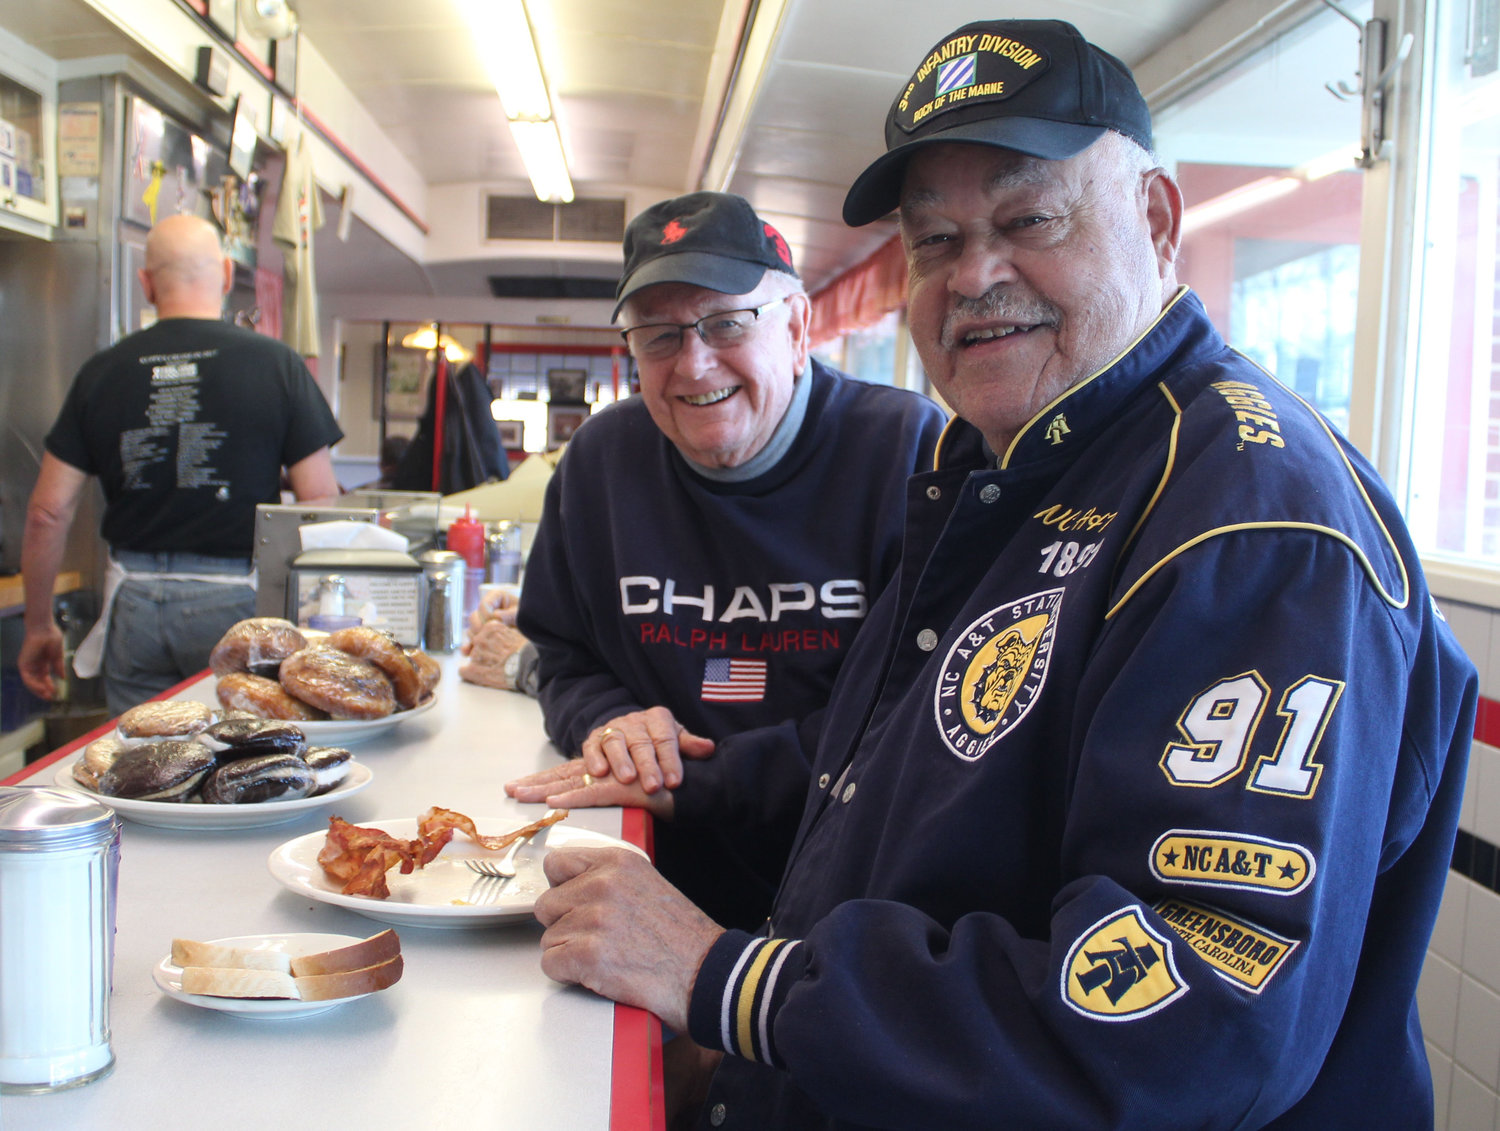 Mayor Robert Reid and Karl Kupp have breakfast together at Kuppy's on Feb. 19.